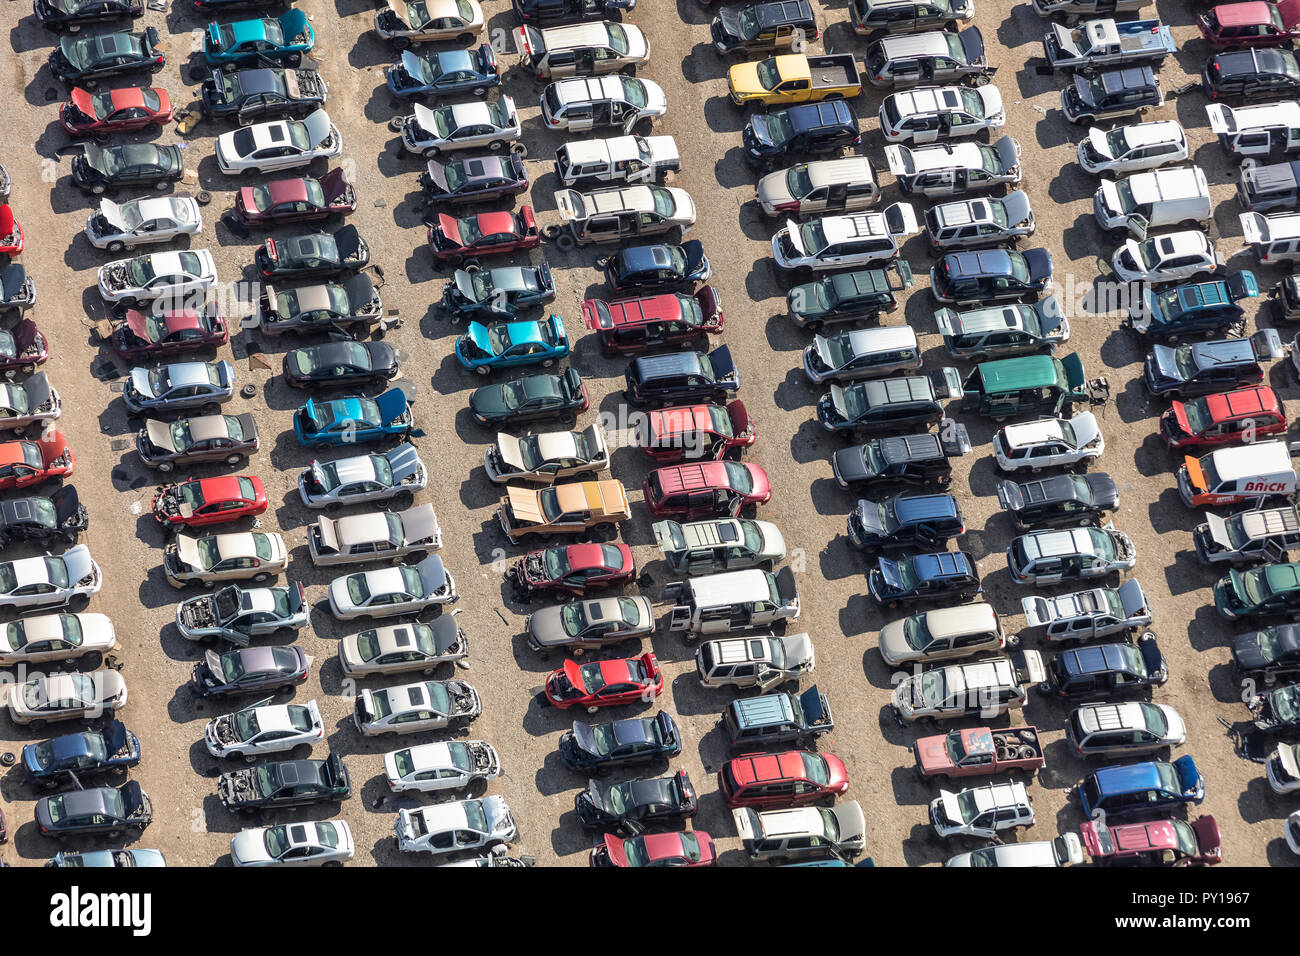 Aerial view of automobiles at auto parts recyclers - Stock Image